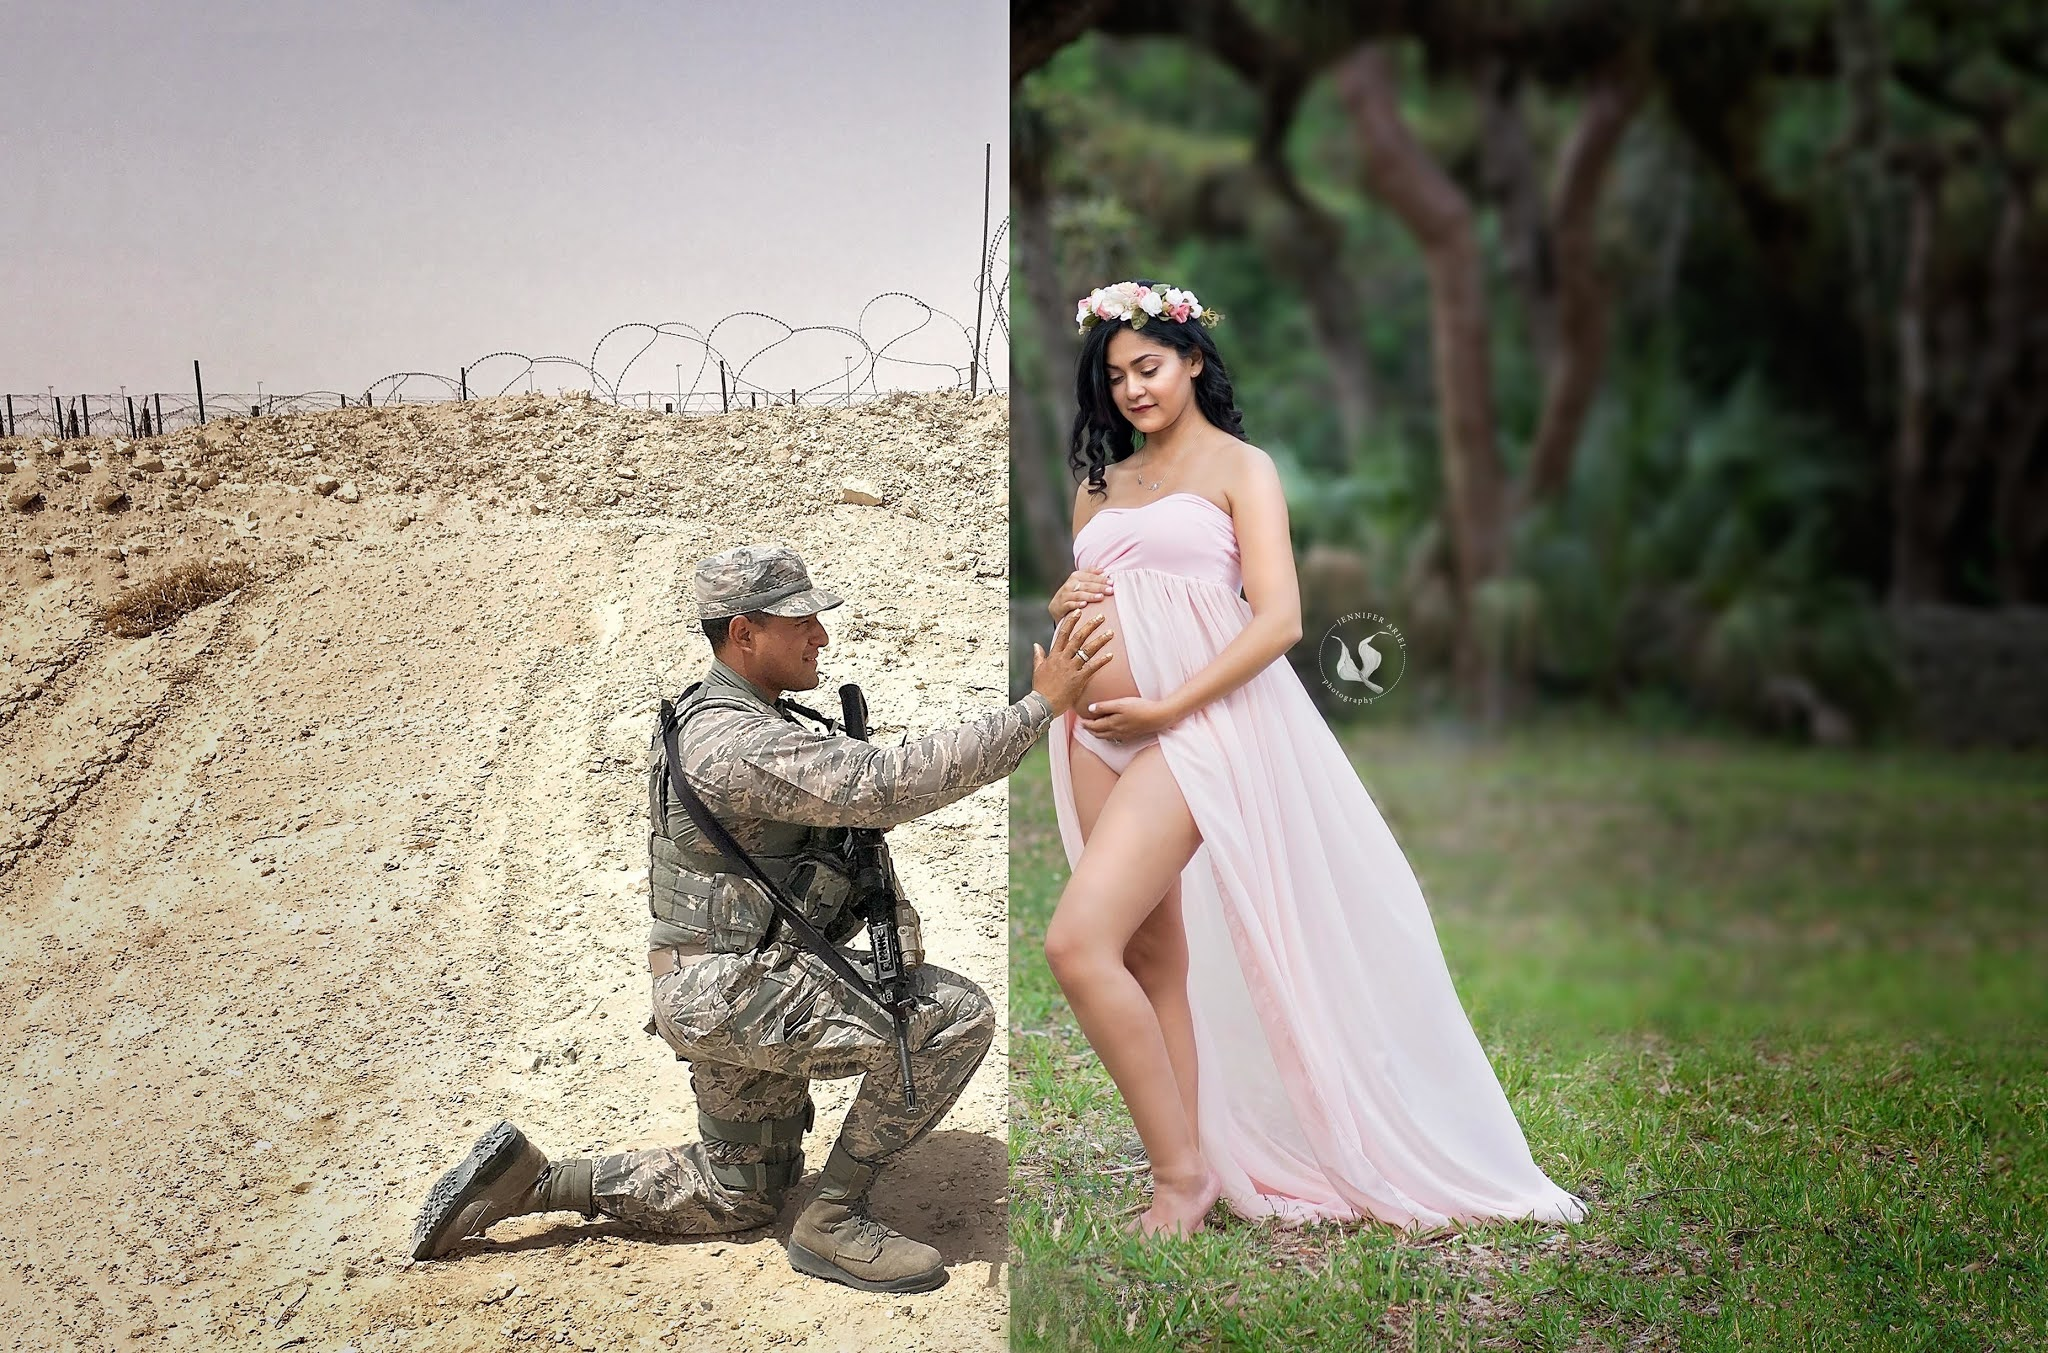 The soldier husband joins wife's Maternity shoot from war. The moments are emotional.